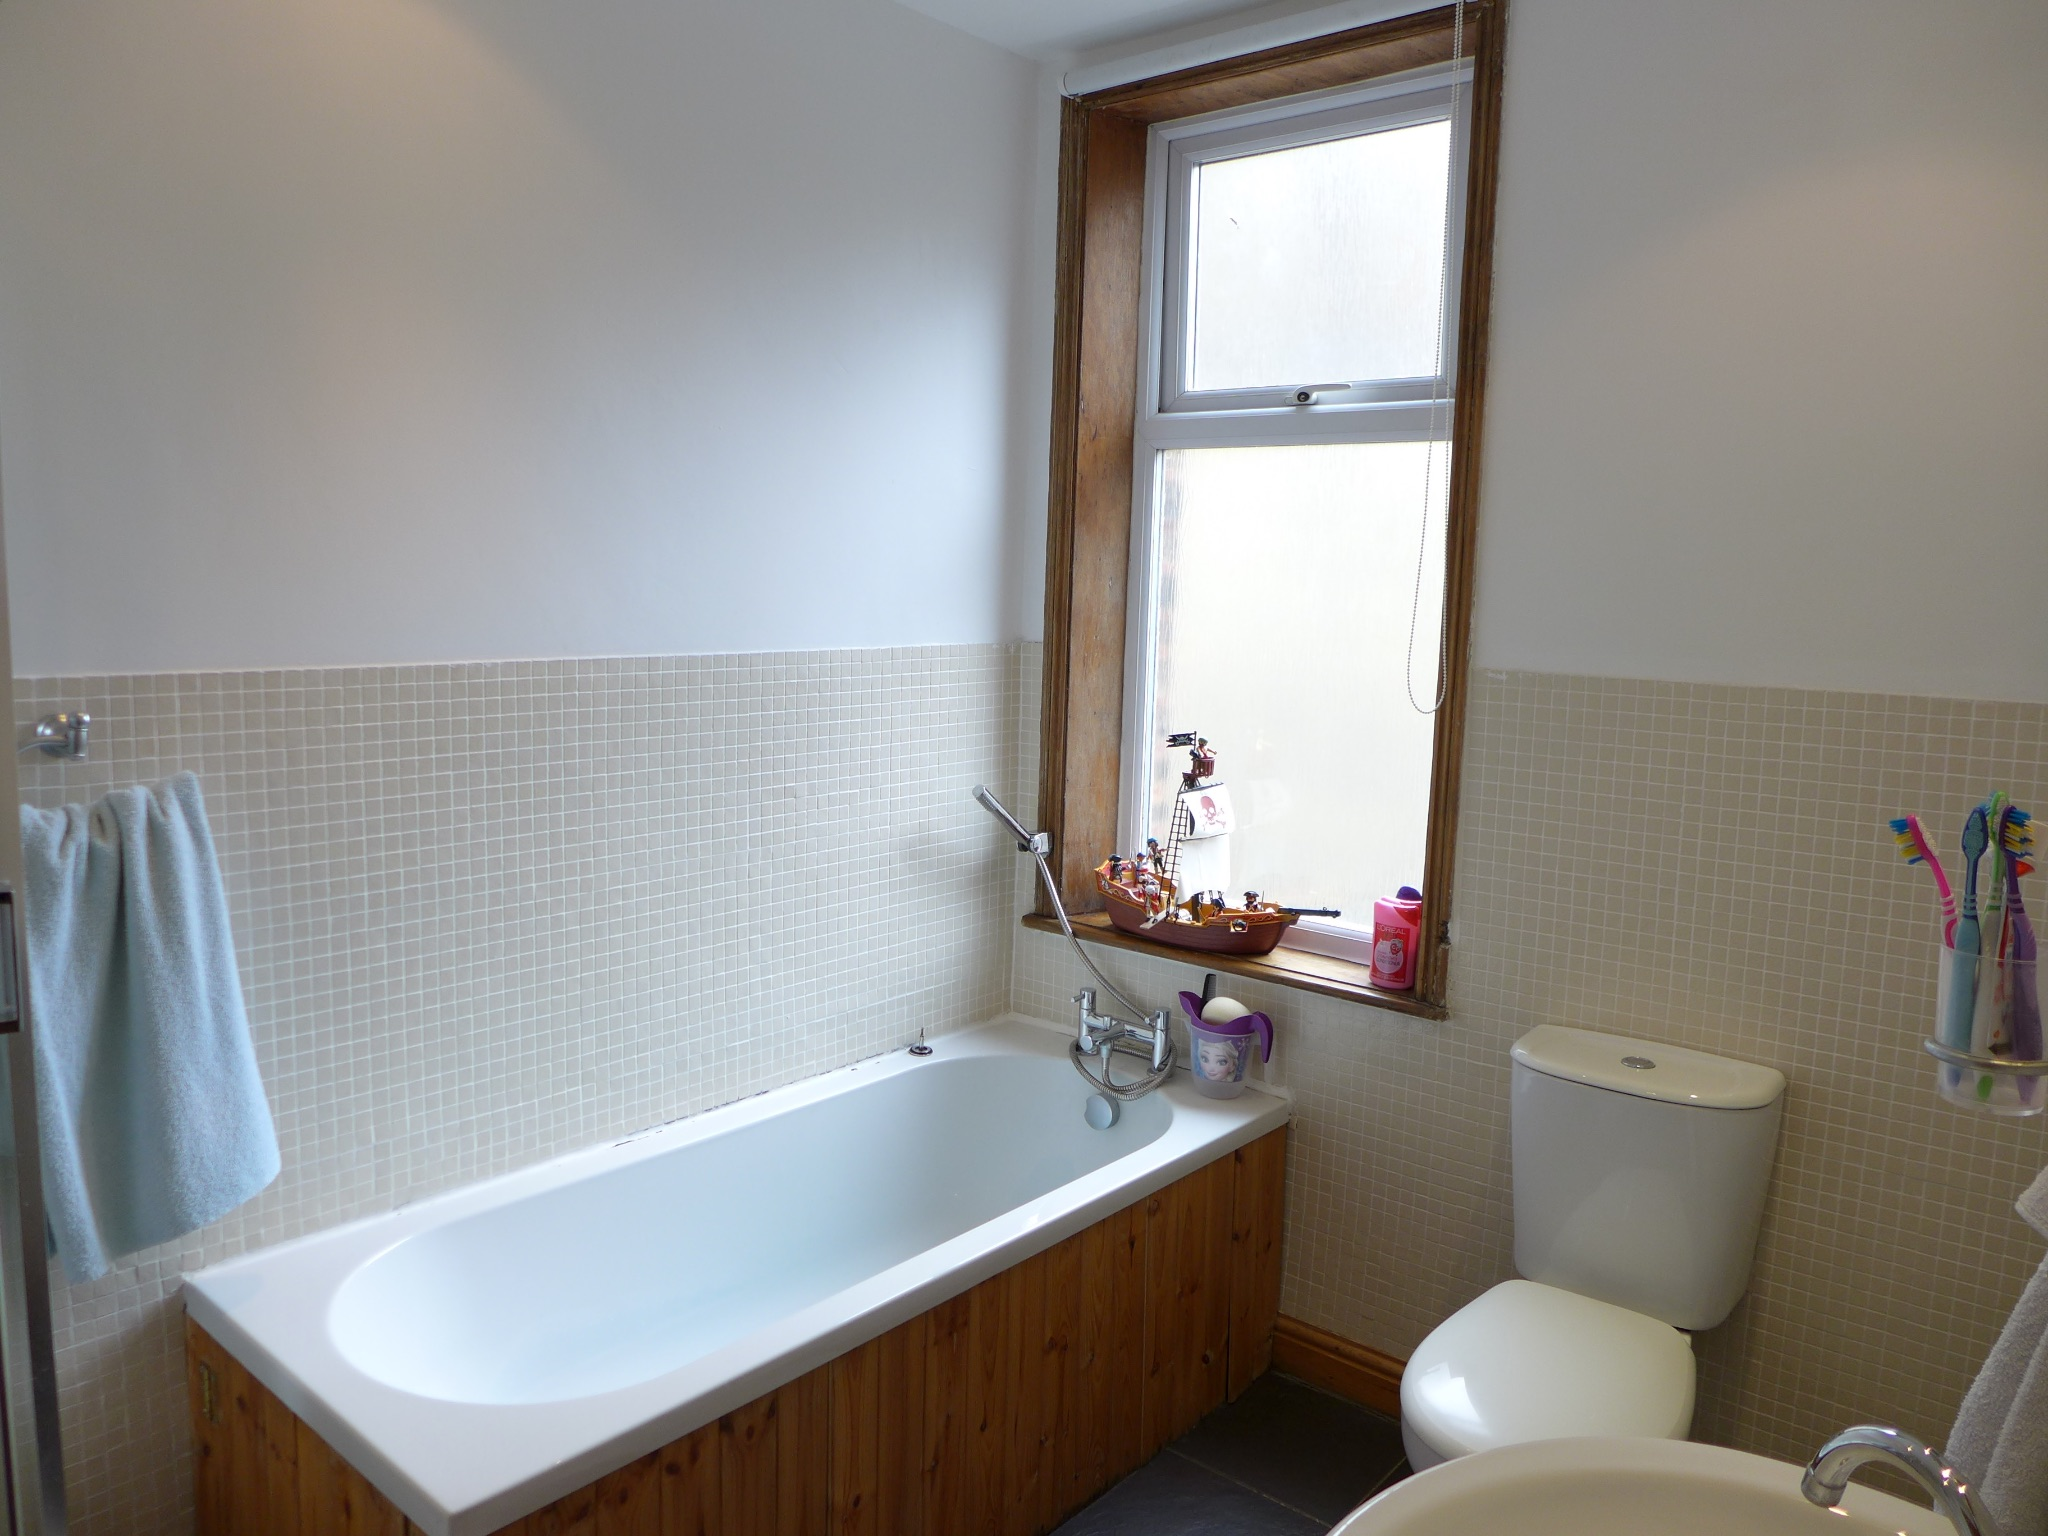 3 bedroom mid terraced house For Sale in Todmorden - Photograph 10.